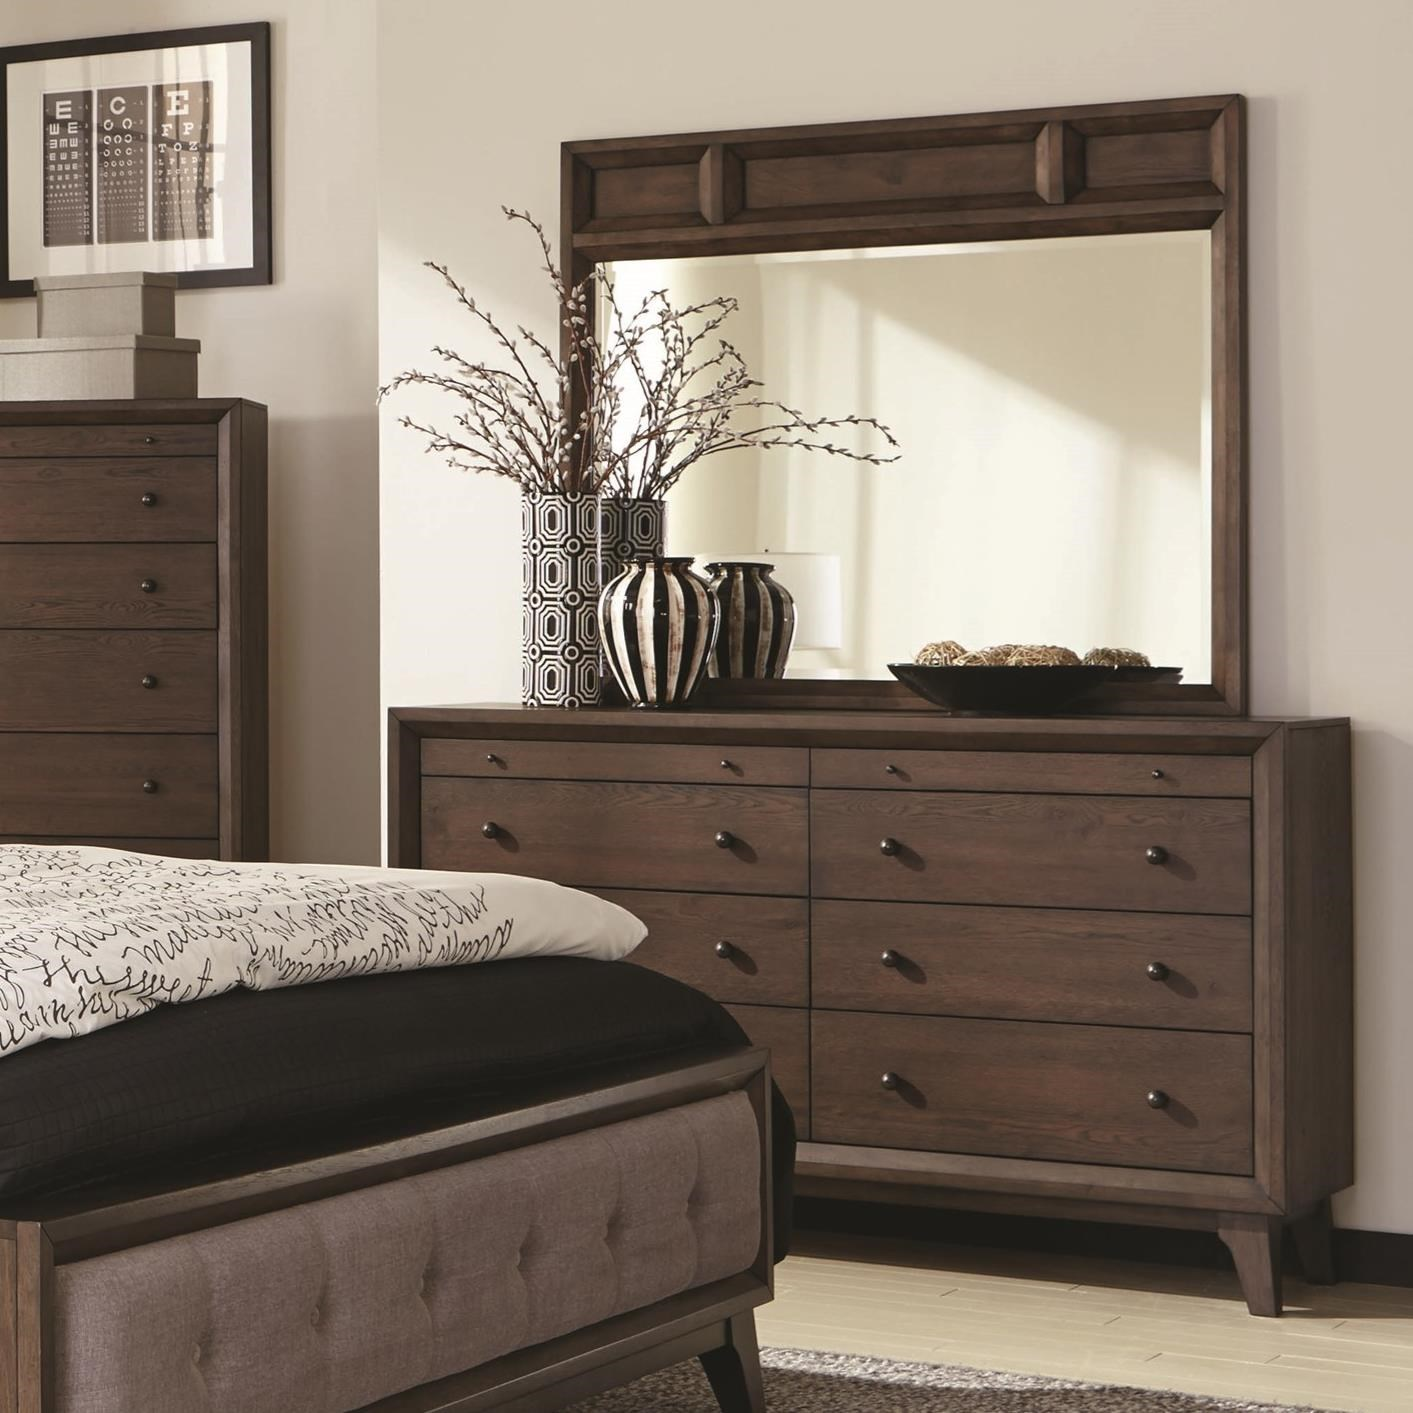 Bingham 8 Drawer Dresser and Mirror by Coaster at Northeast Factory Direct